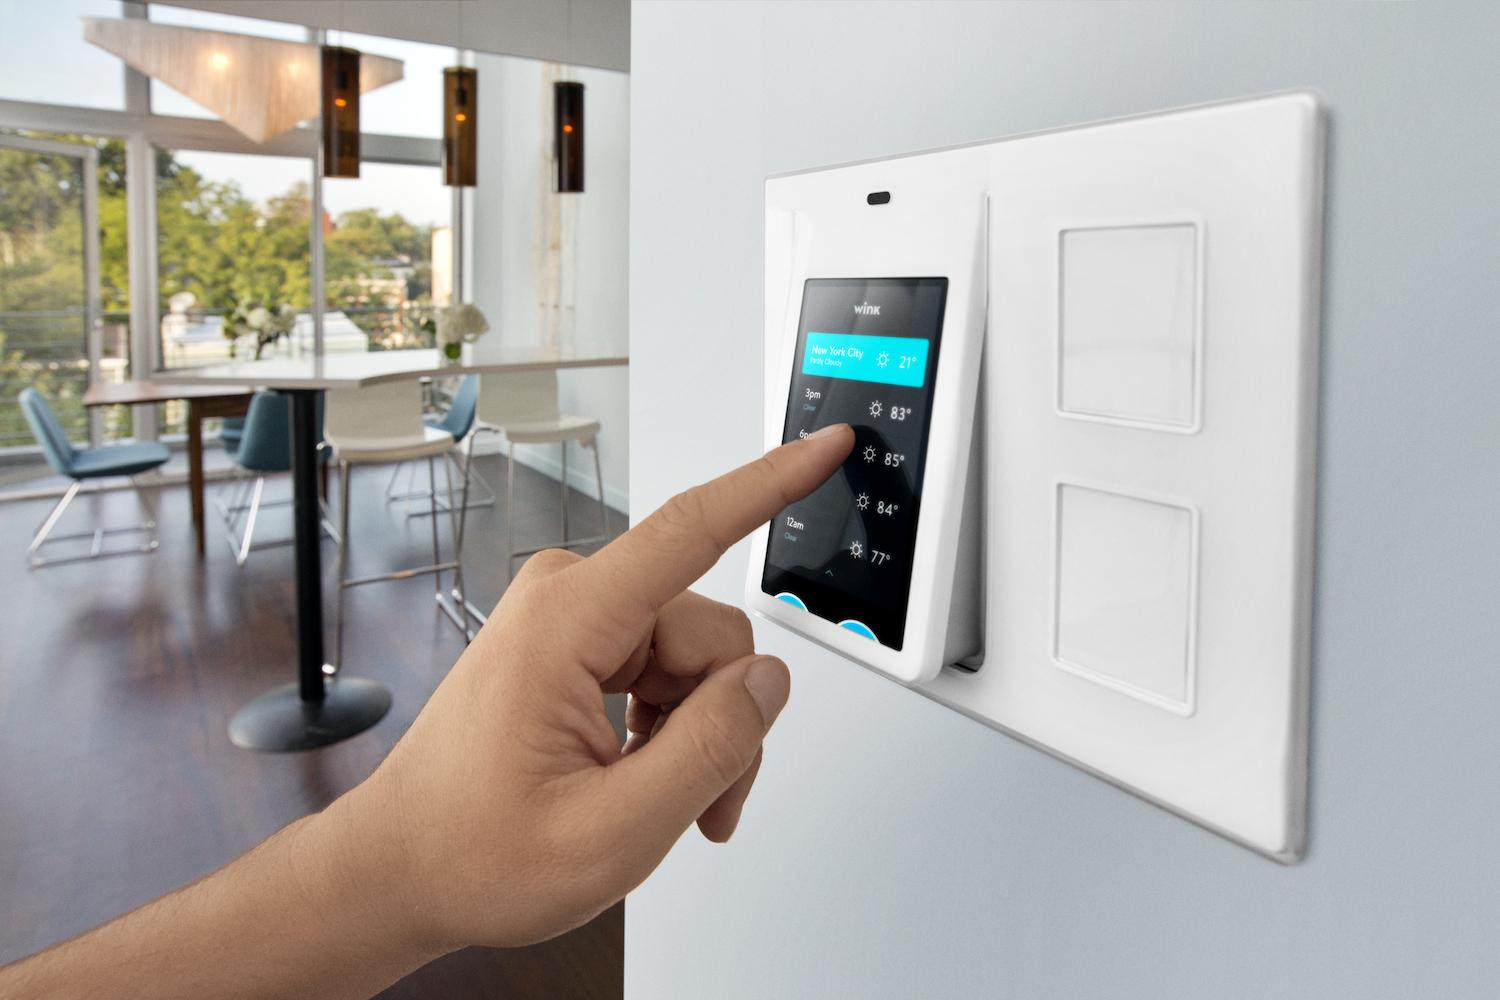 Wink Releases Relay A Smart Home Control Panel Digital Trends